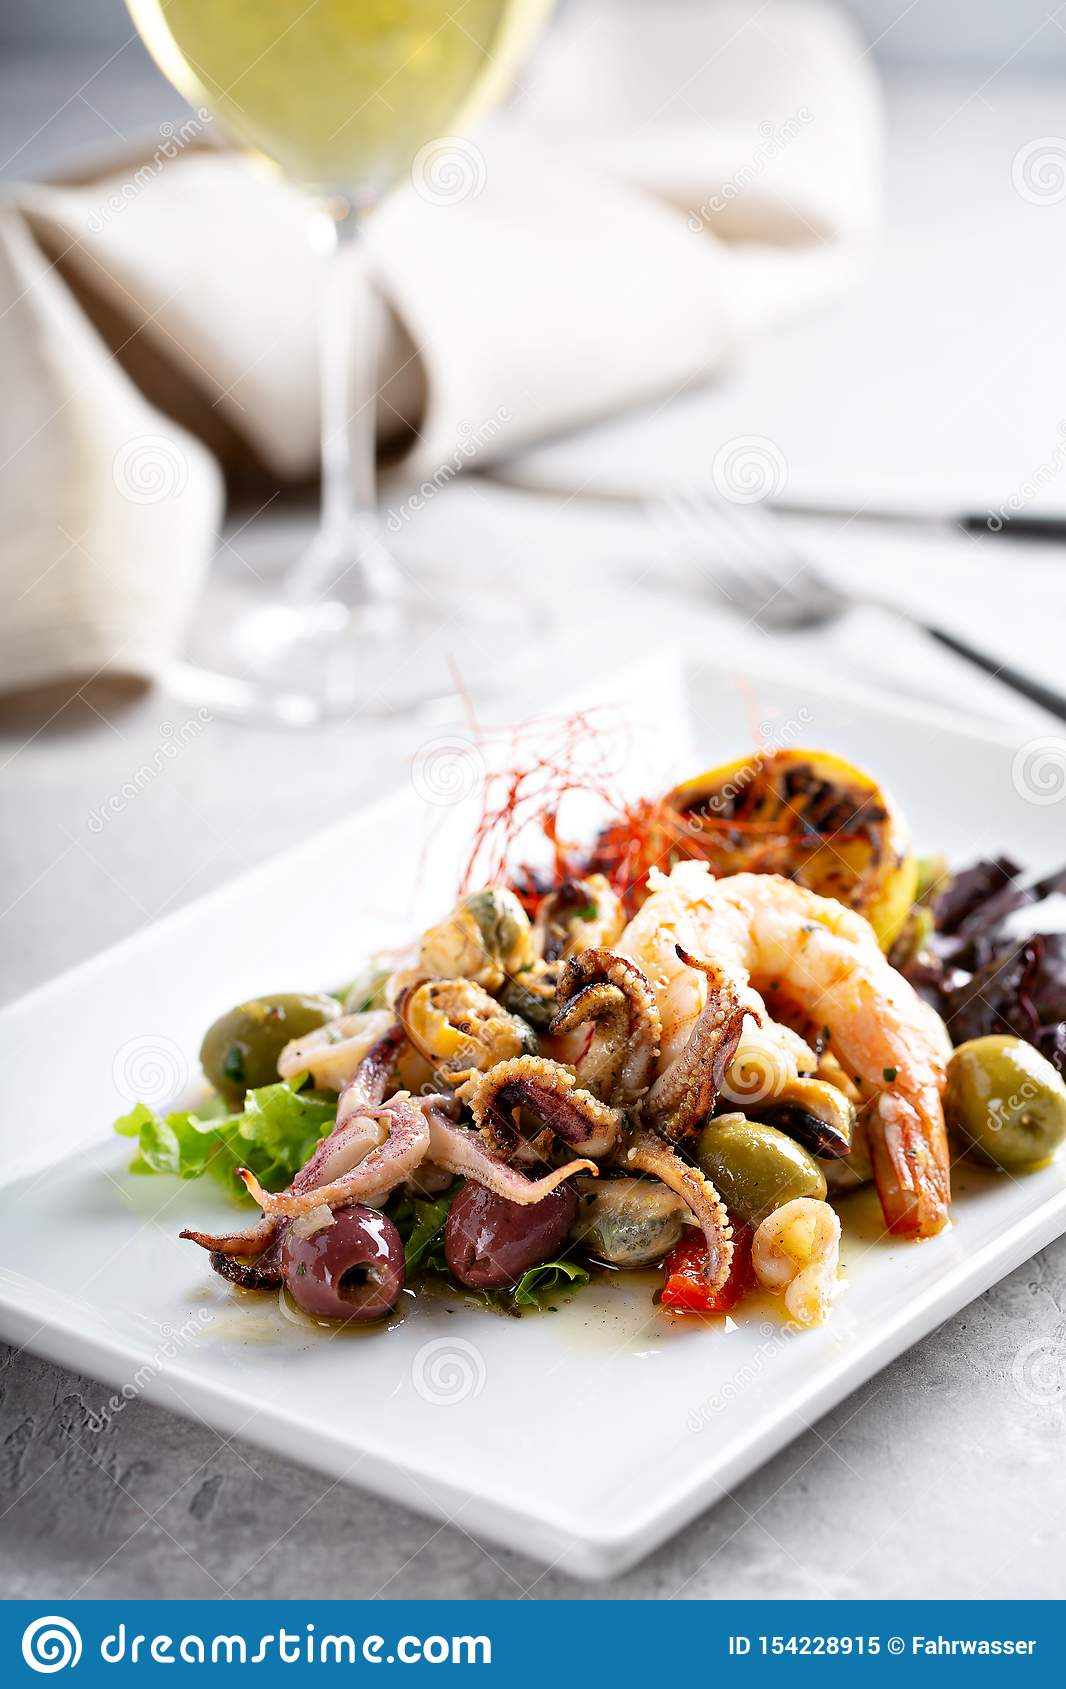 Seafood octopus salad stock image. Image of delicious ...